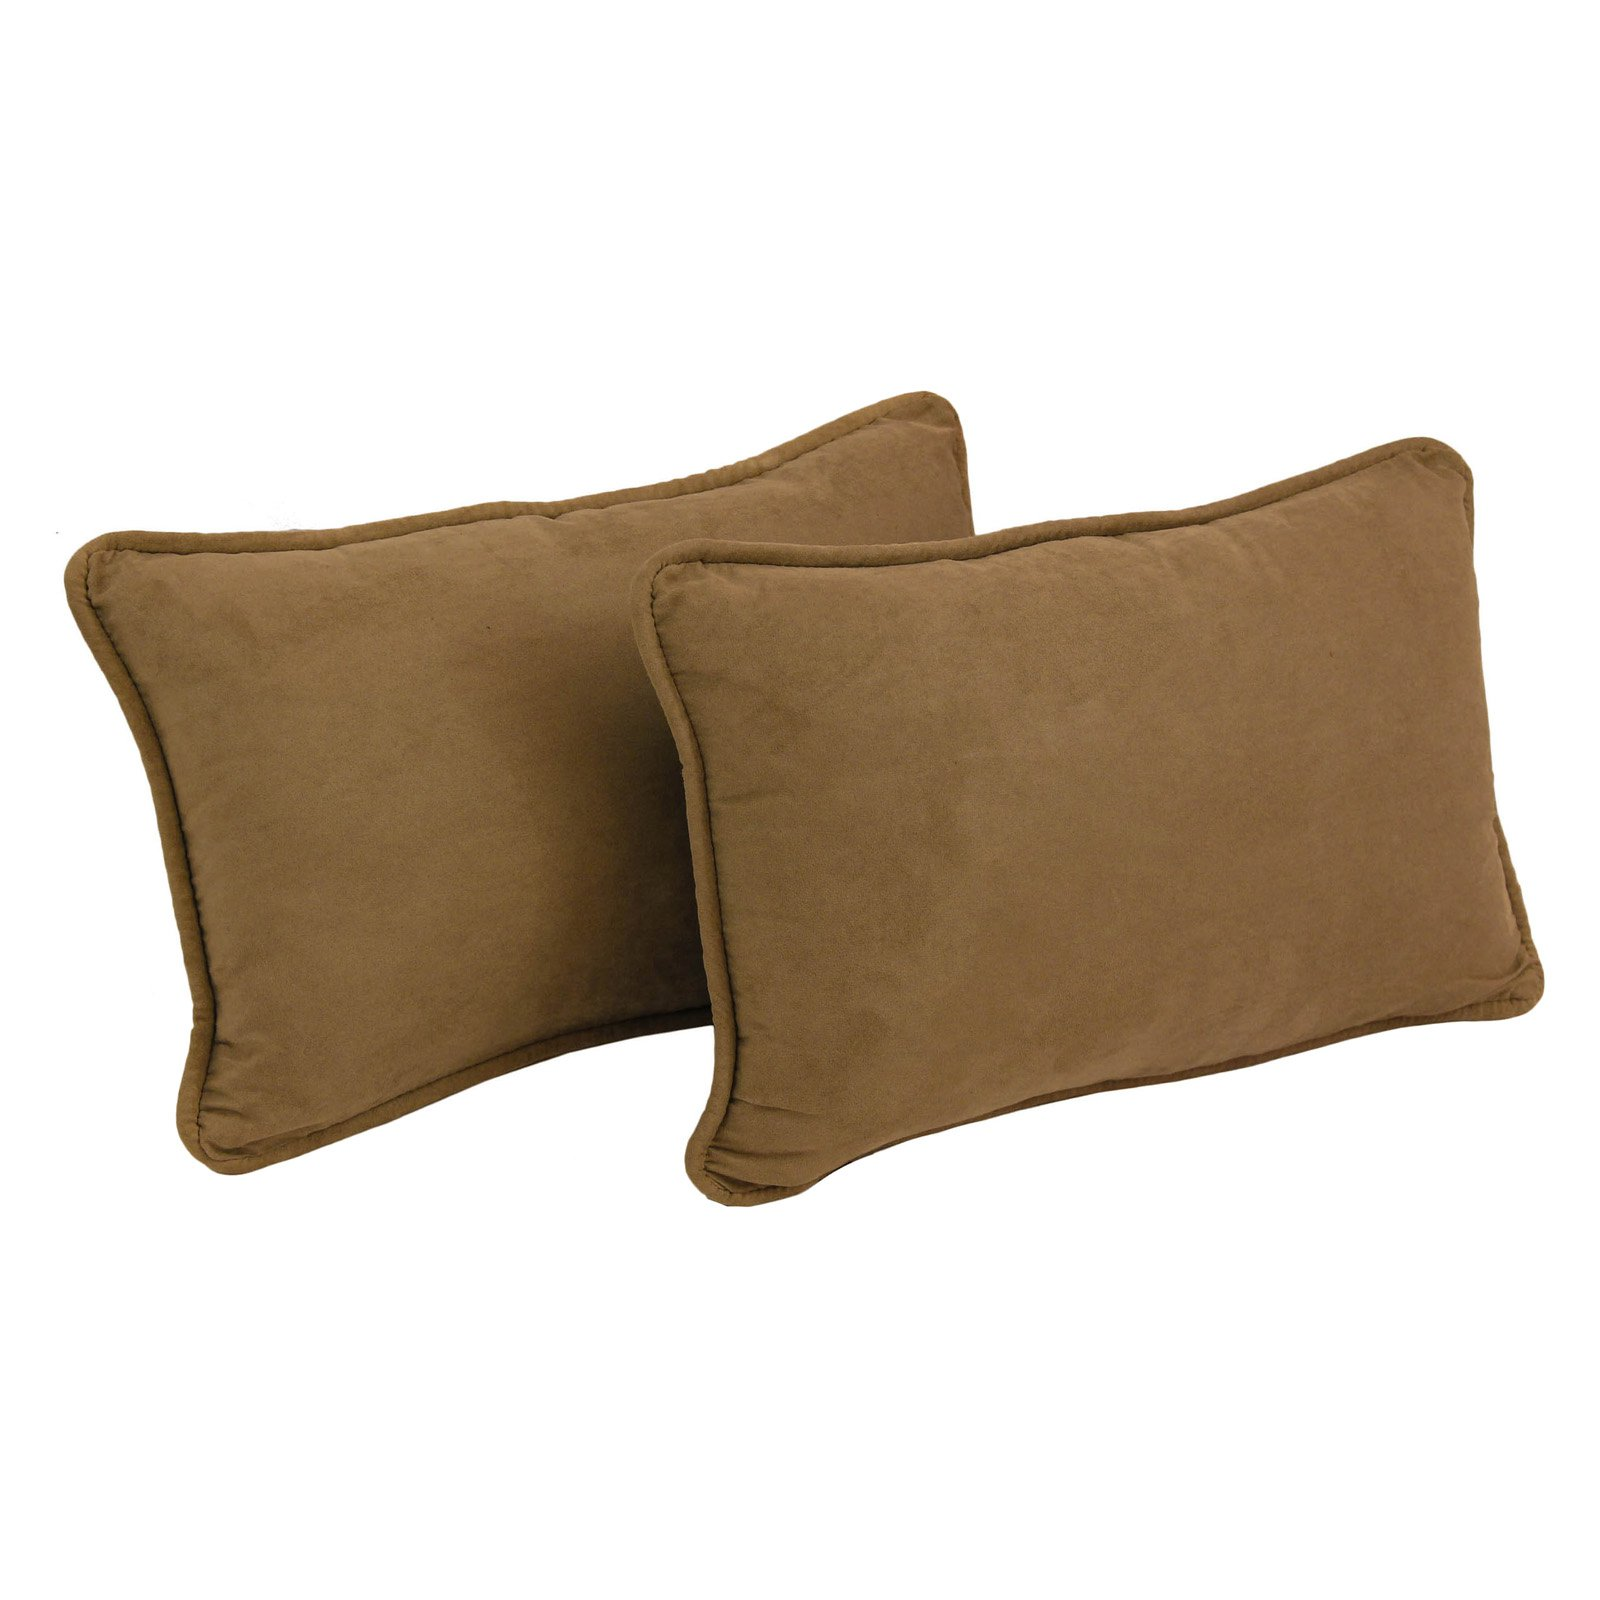 Blazing Needles Microsuede 20 x 12 in. Rectangle Decorative Throw Pillows - Set of 2